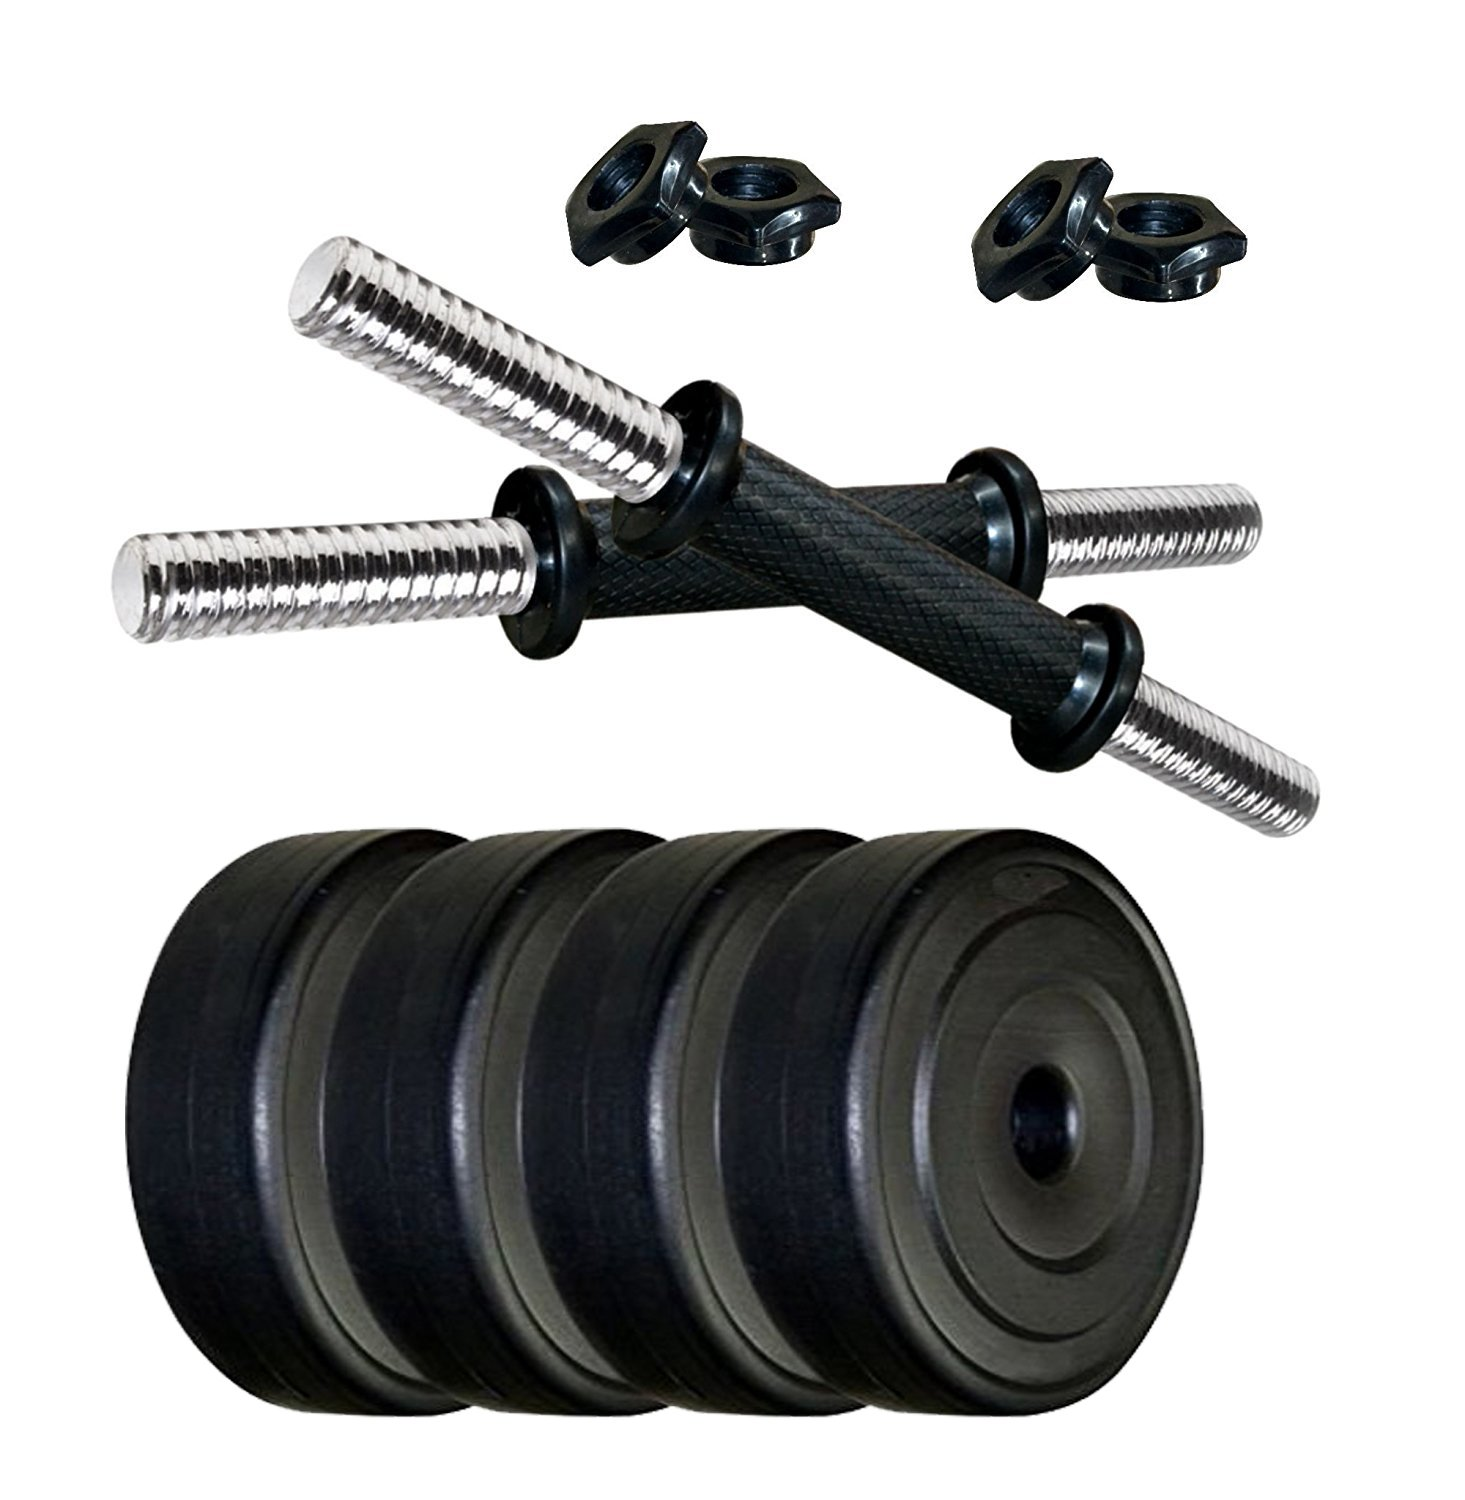 Protoner 20kg Adjustable Dumbbell Set, Adult